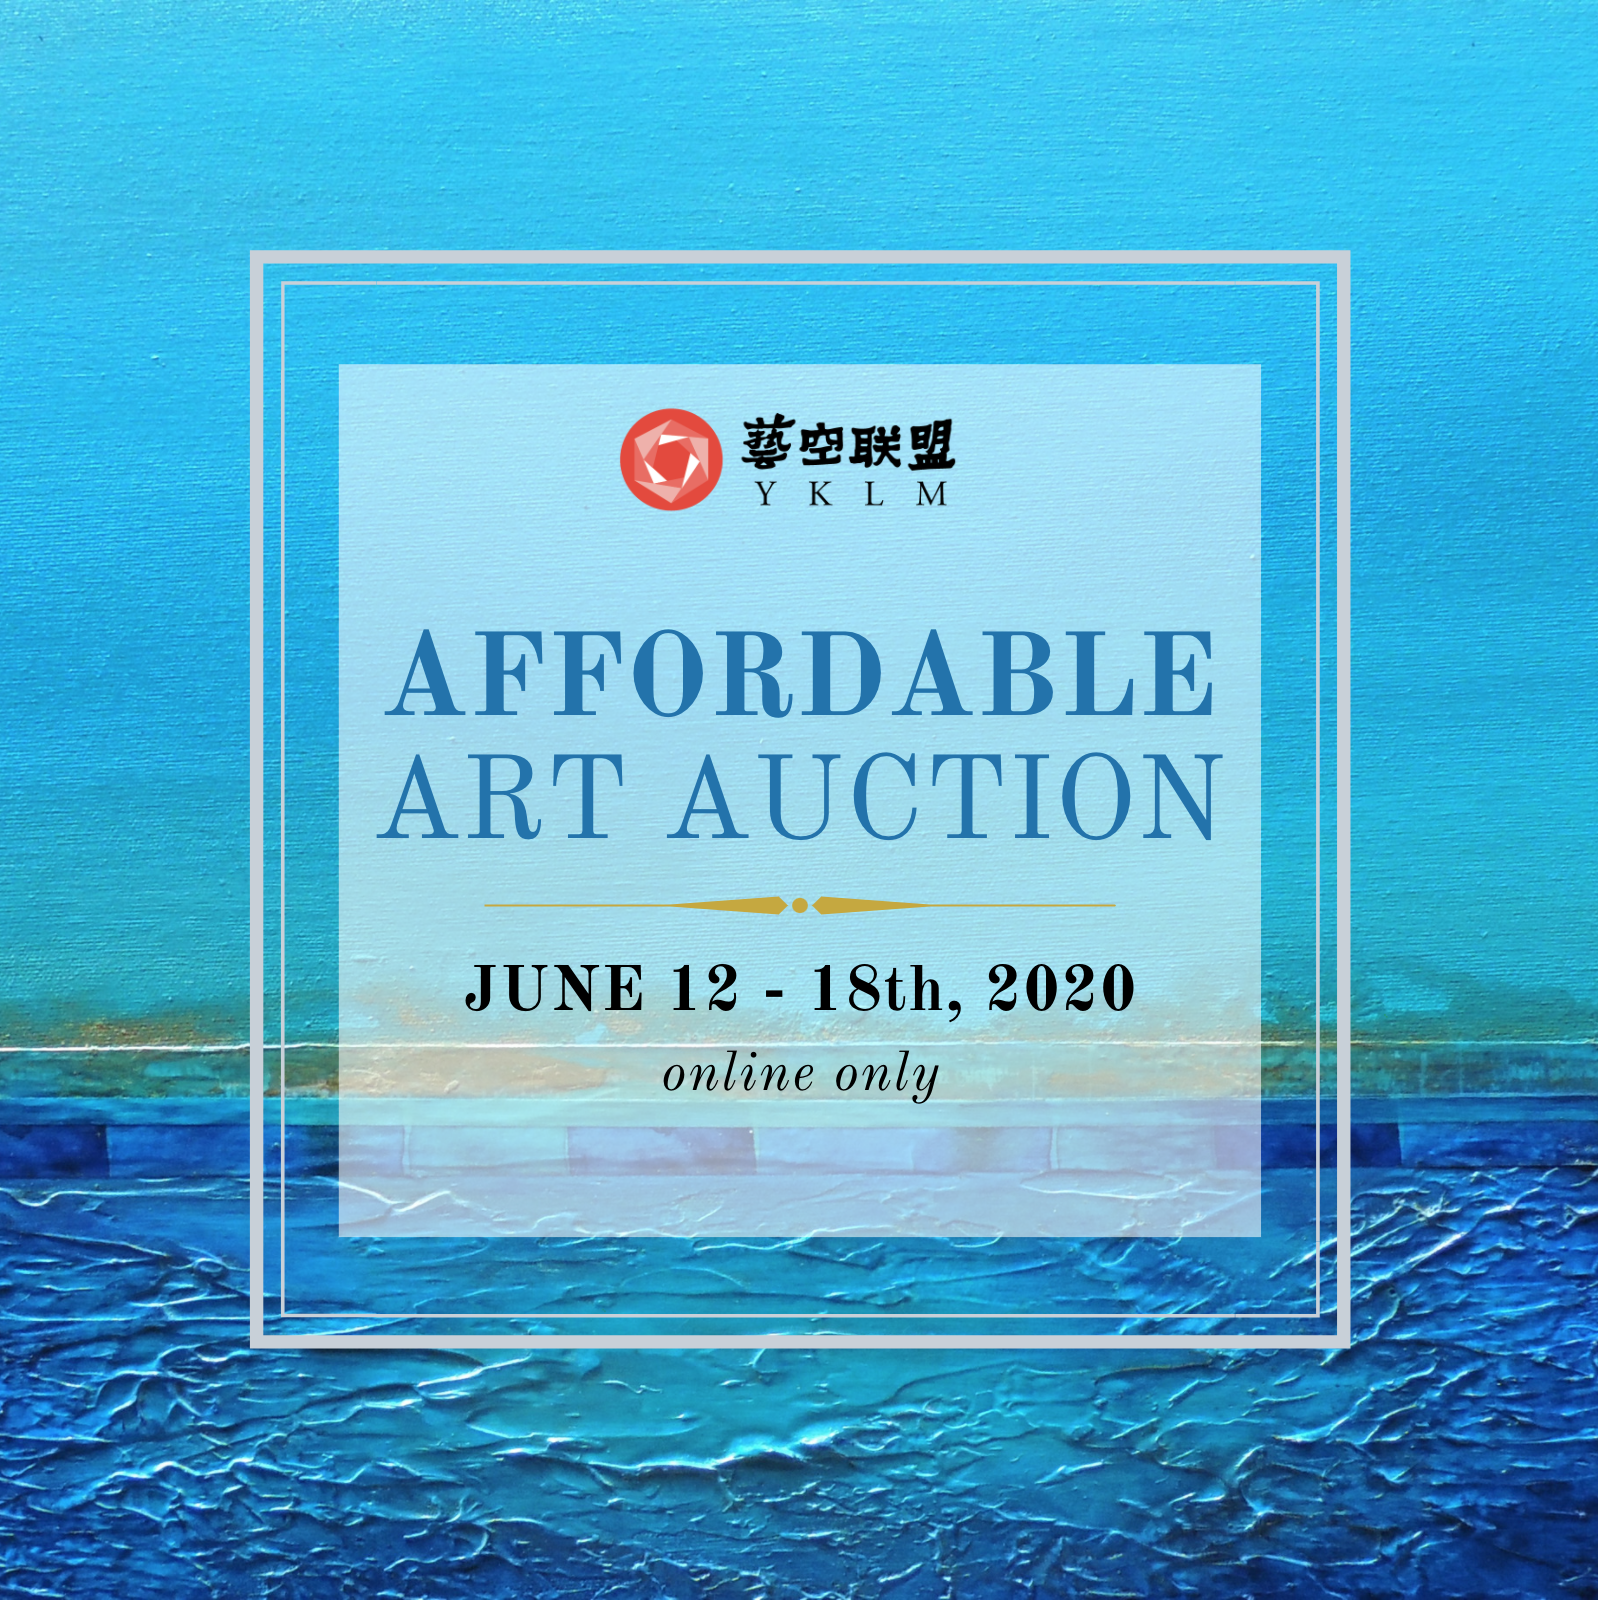 Affordable Art Auction